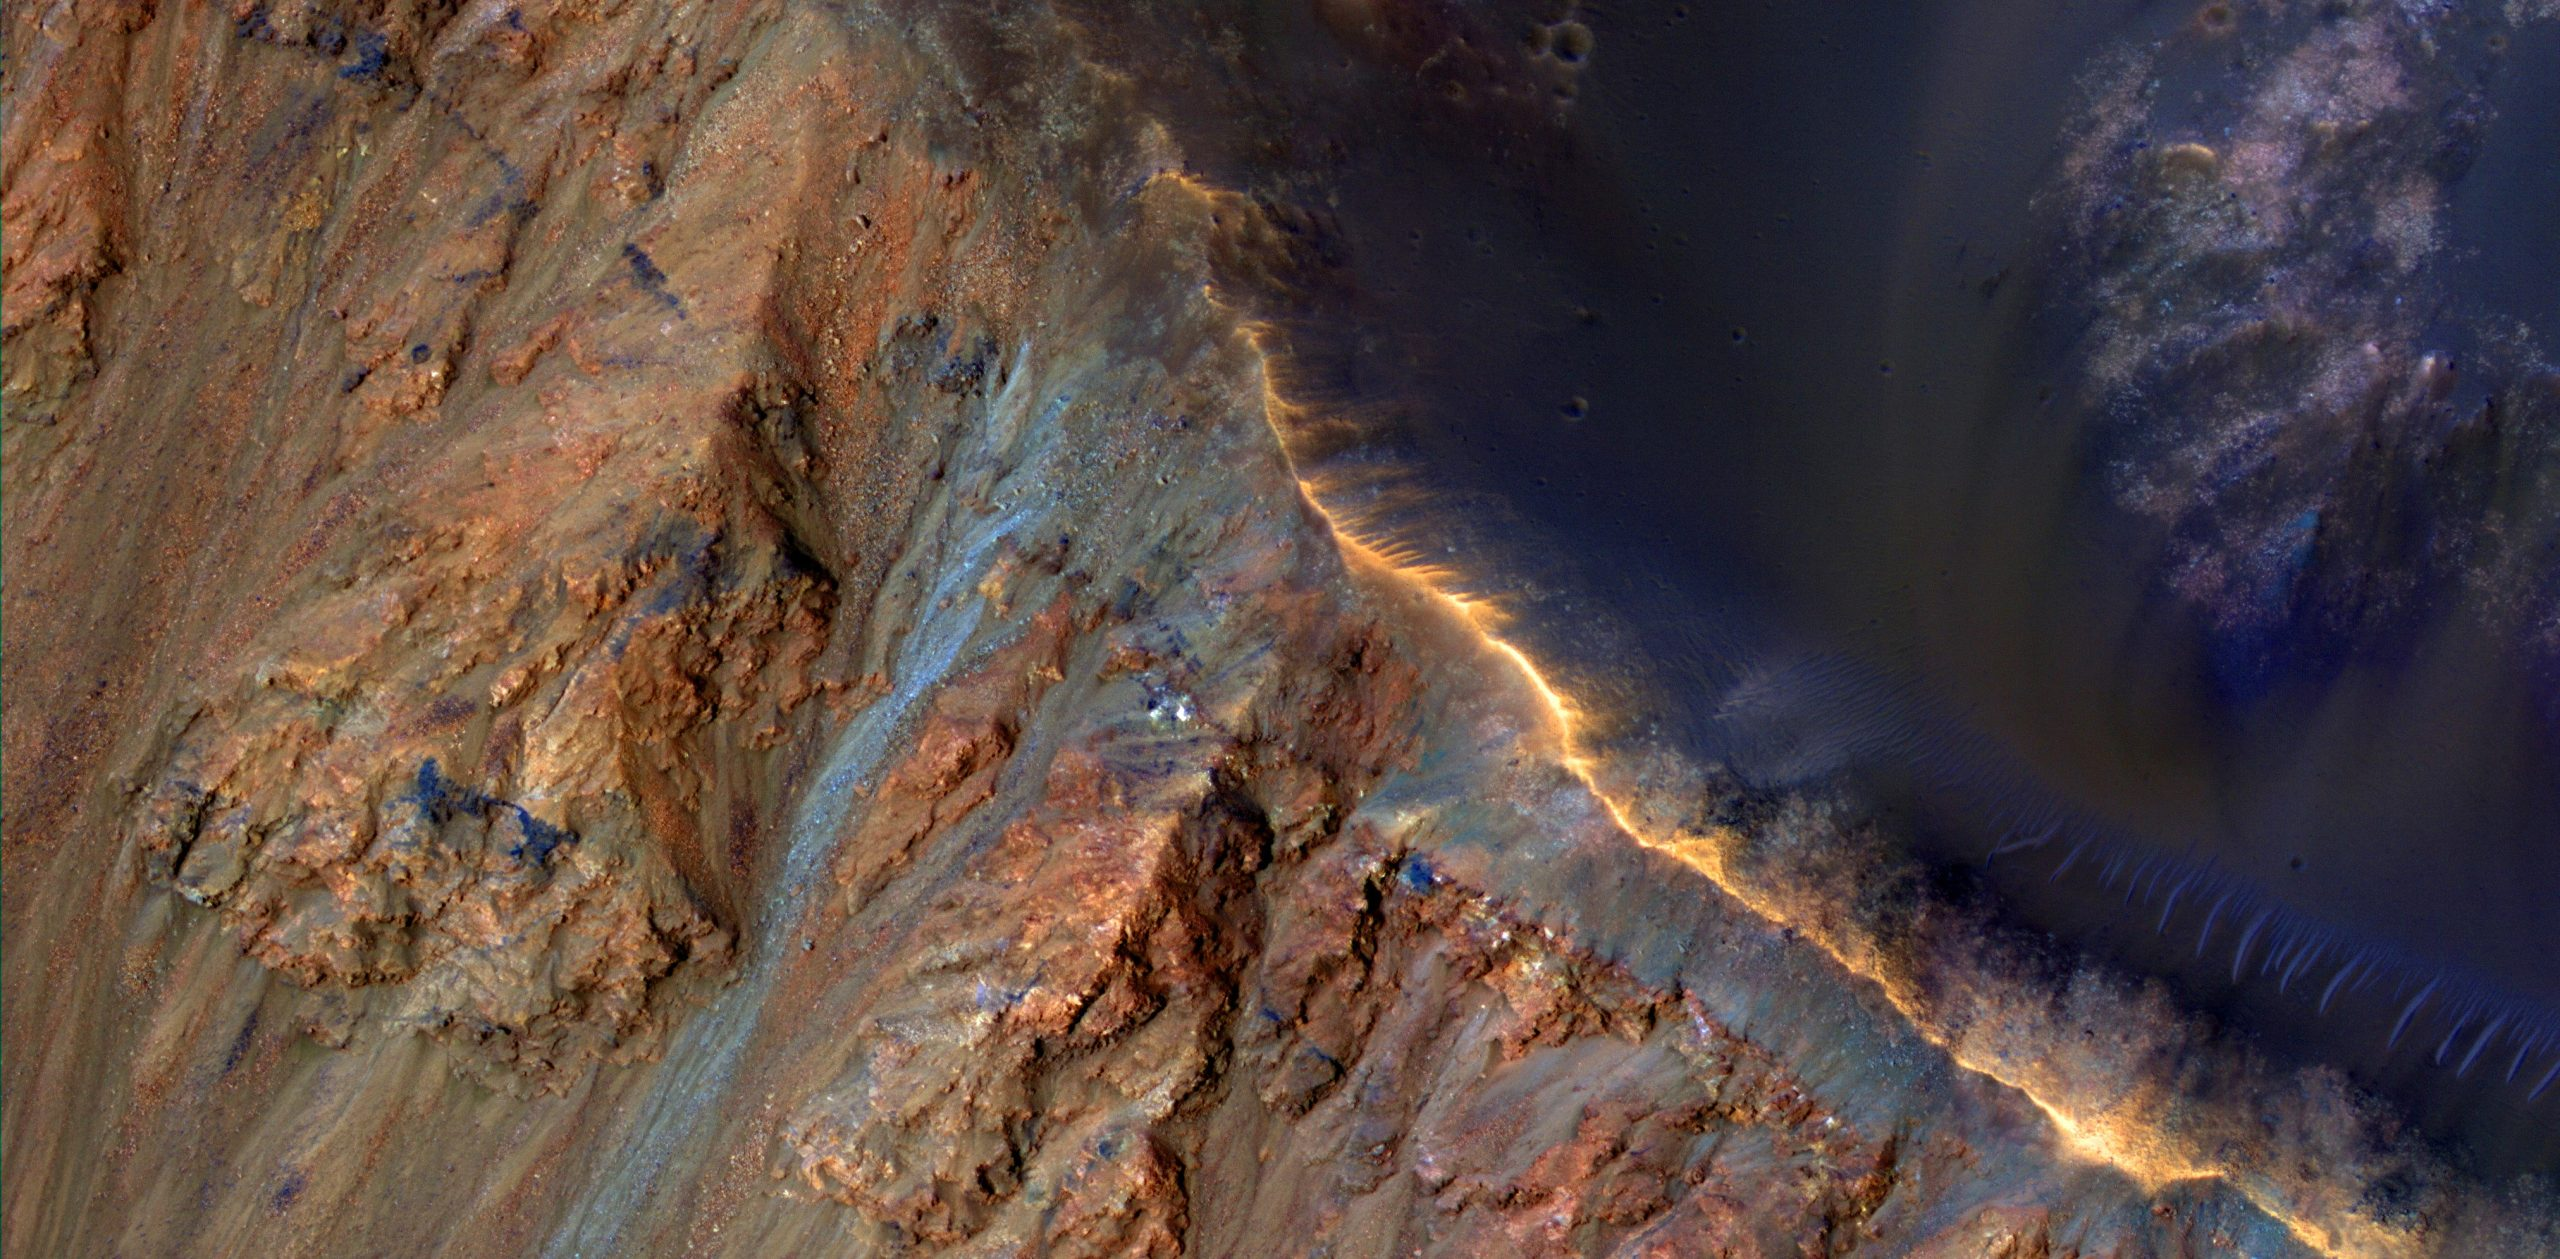 SETI Researchers Have a New Theory About What Is Causing Landslides on the Surface of Mars - SciTechDaily